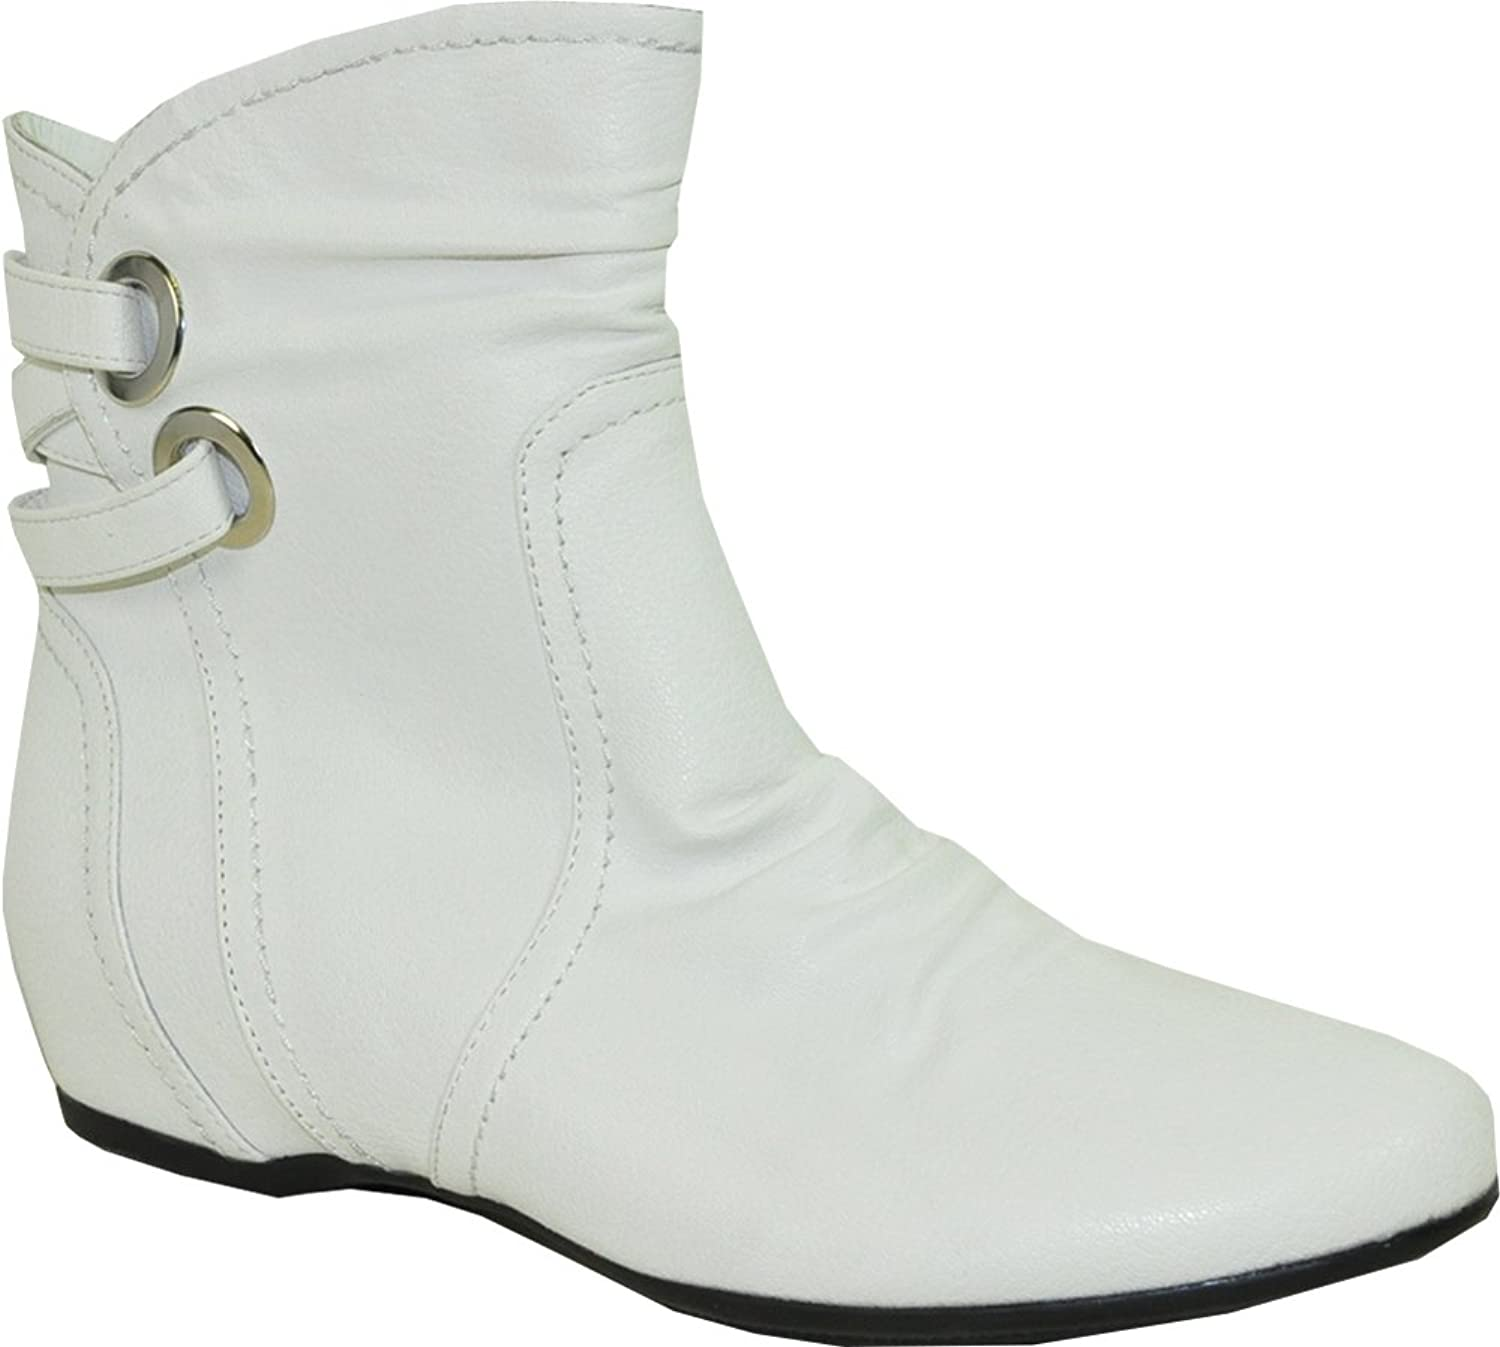 VANGELO Women Ankle Comfort Wedge Boot SD4416 with a Round Toe